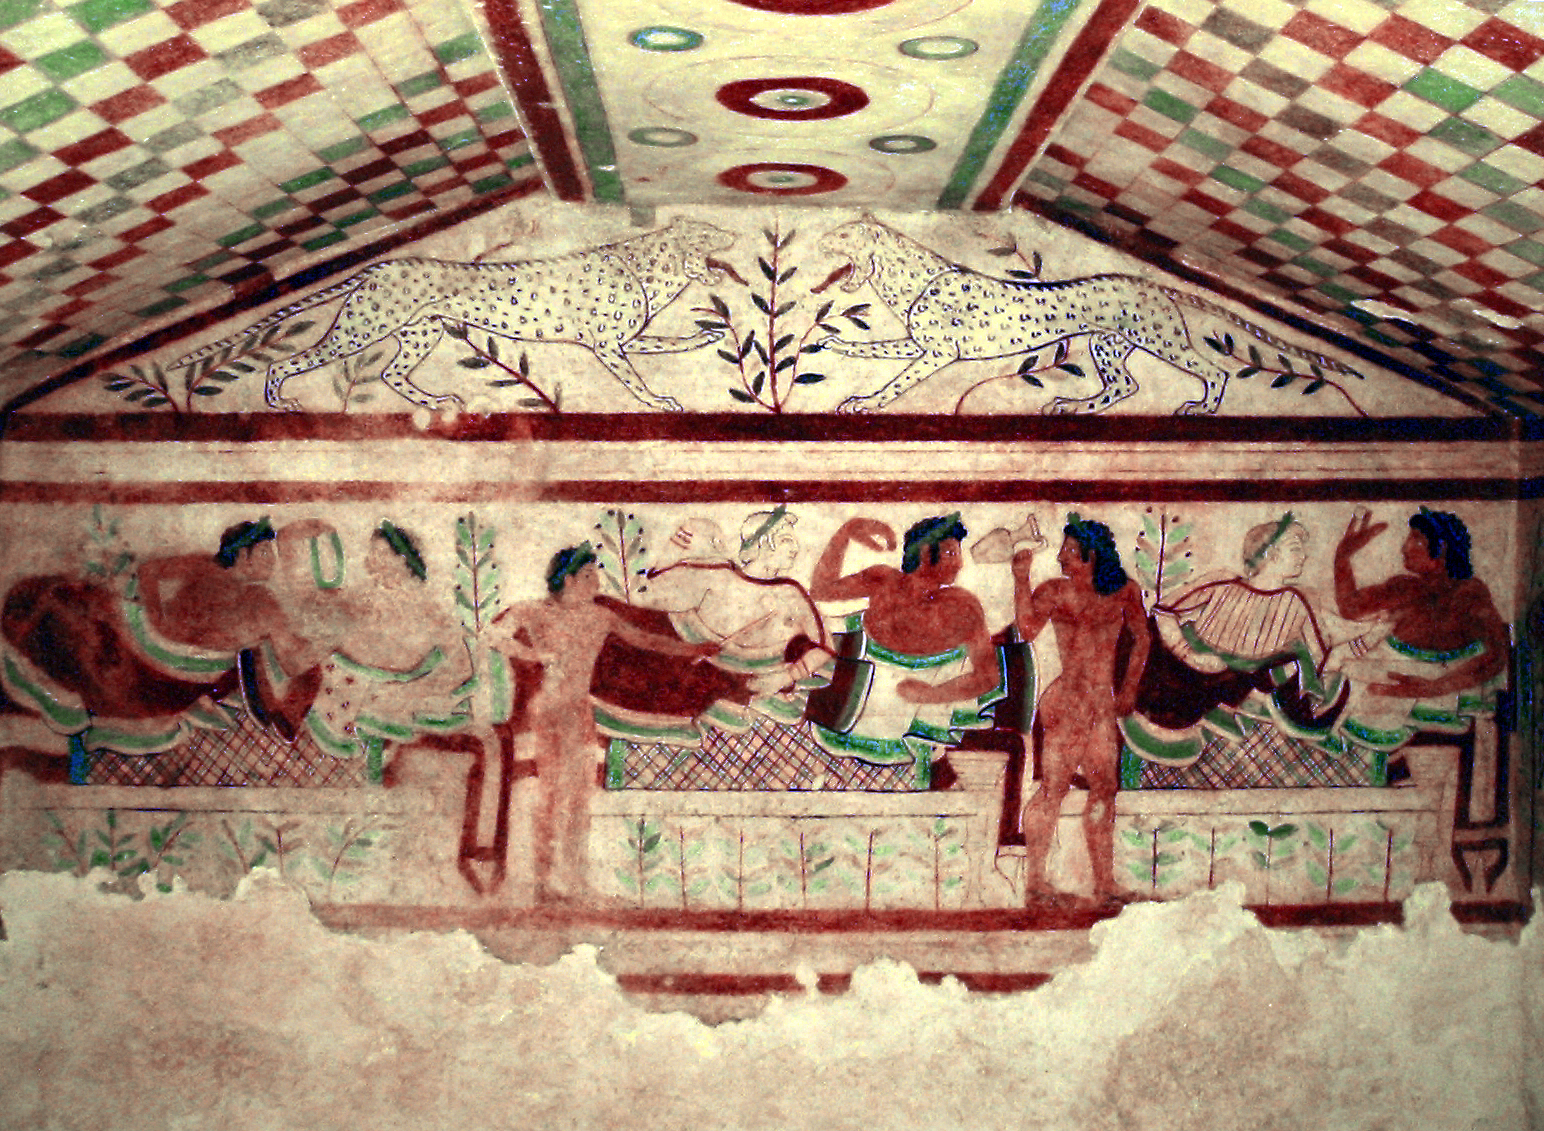 image https://upload.wikimedia.org/wikipedia/commons/2/23/Tarquinia_Tomb_of_the_Leopards.jpg for term side of card